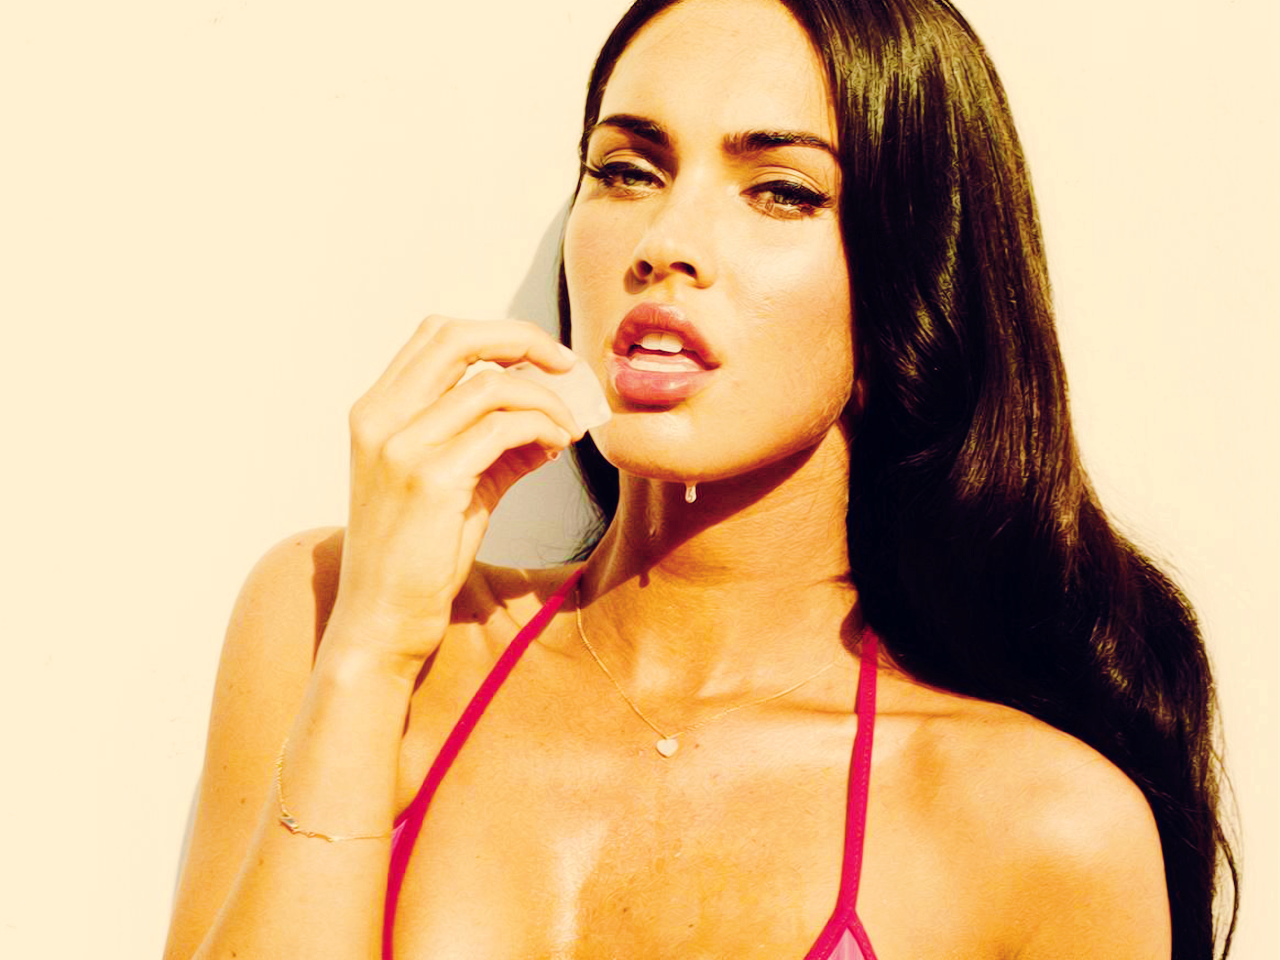 Cars Bikes Girls Hd Wallpapers Megan Fox